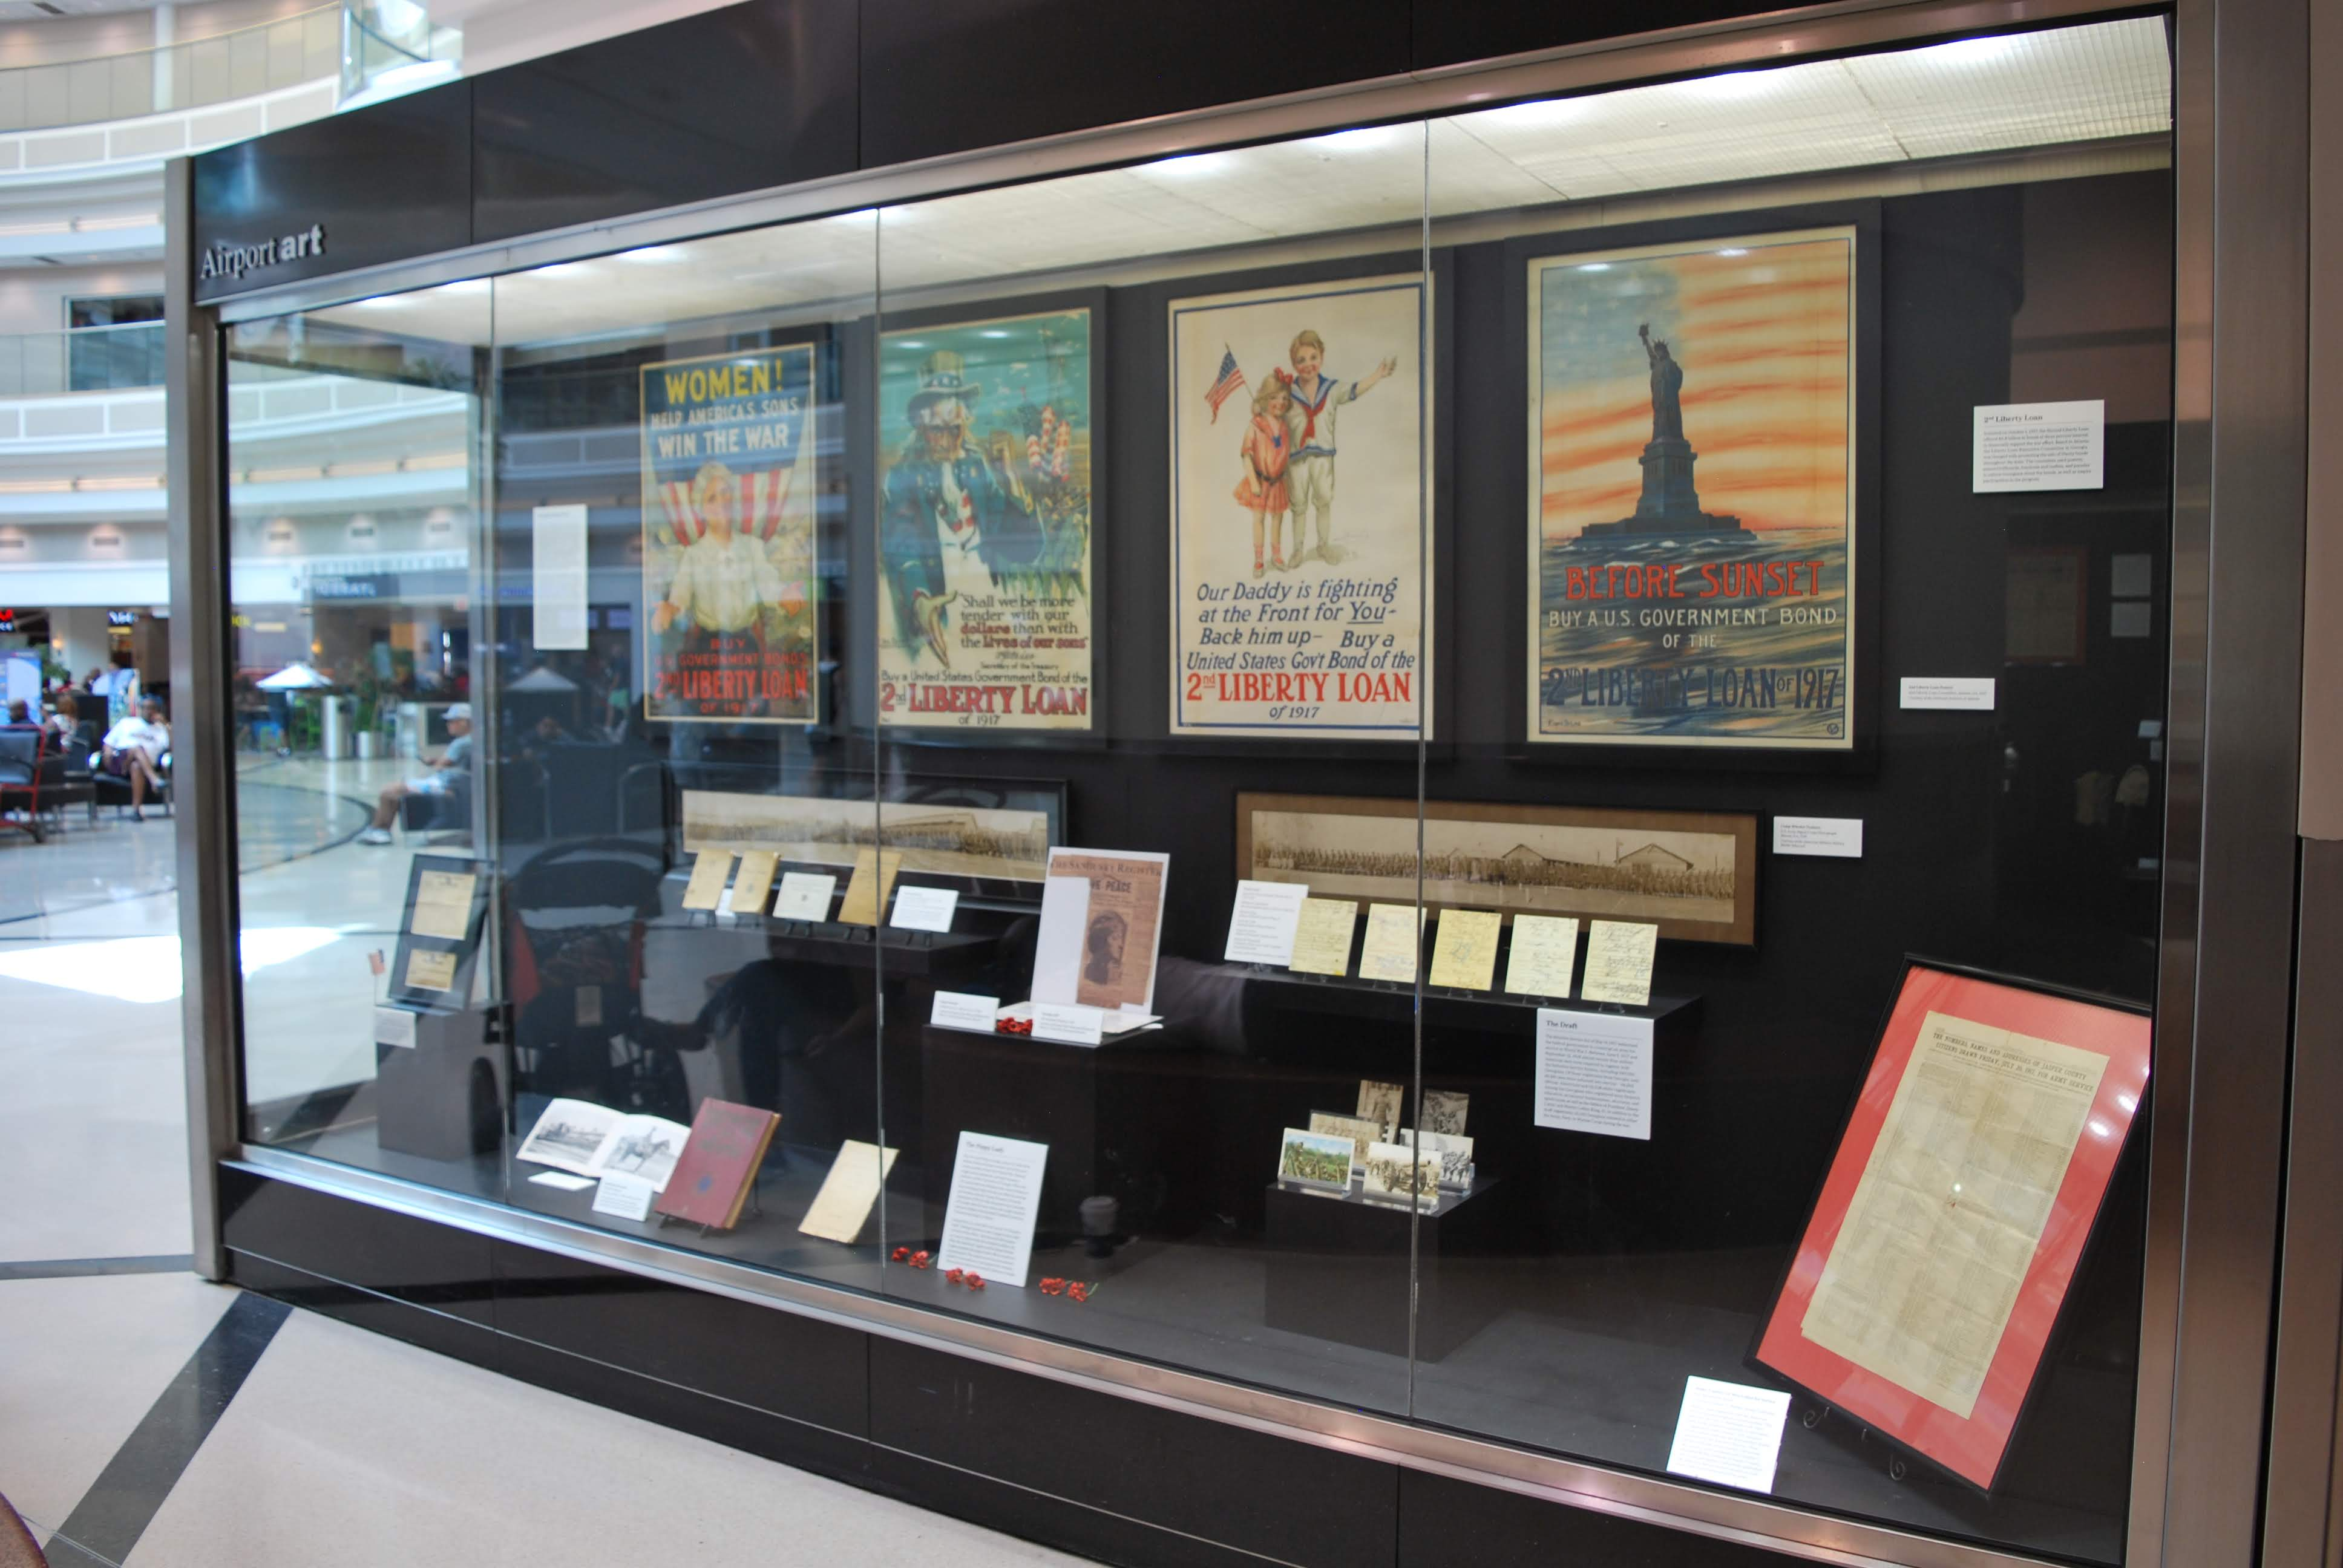 Picture fo the entire WW1 display at Hartsfield-Jackson International Airport